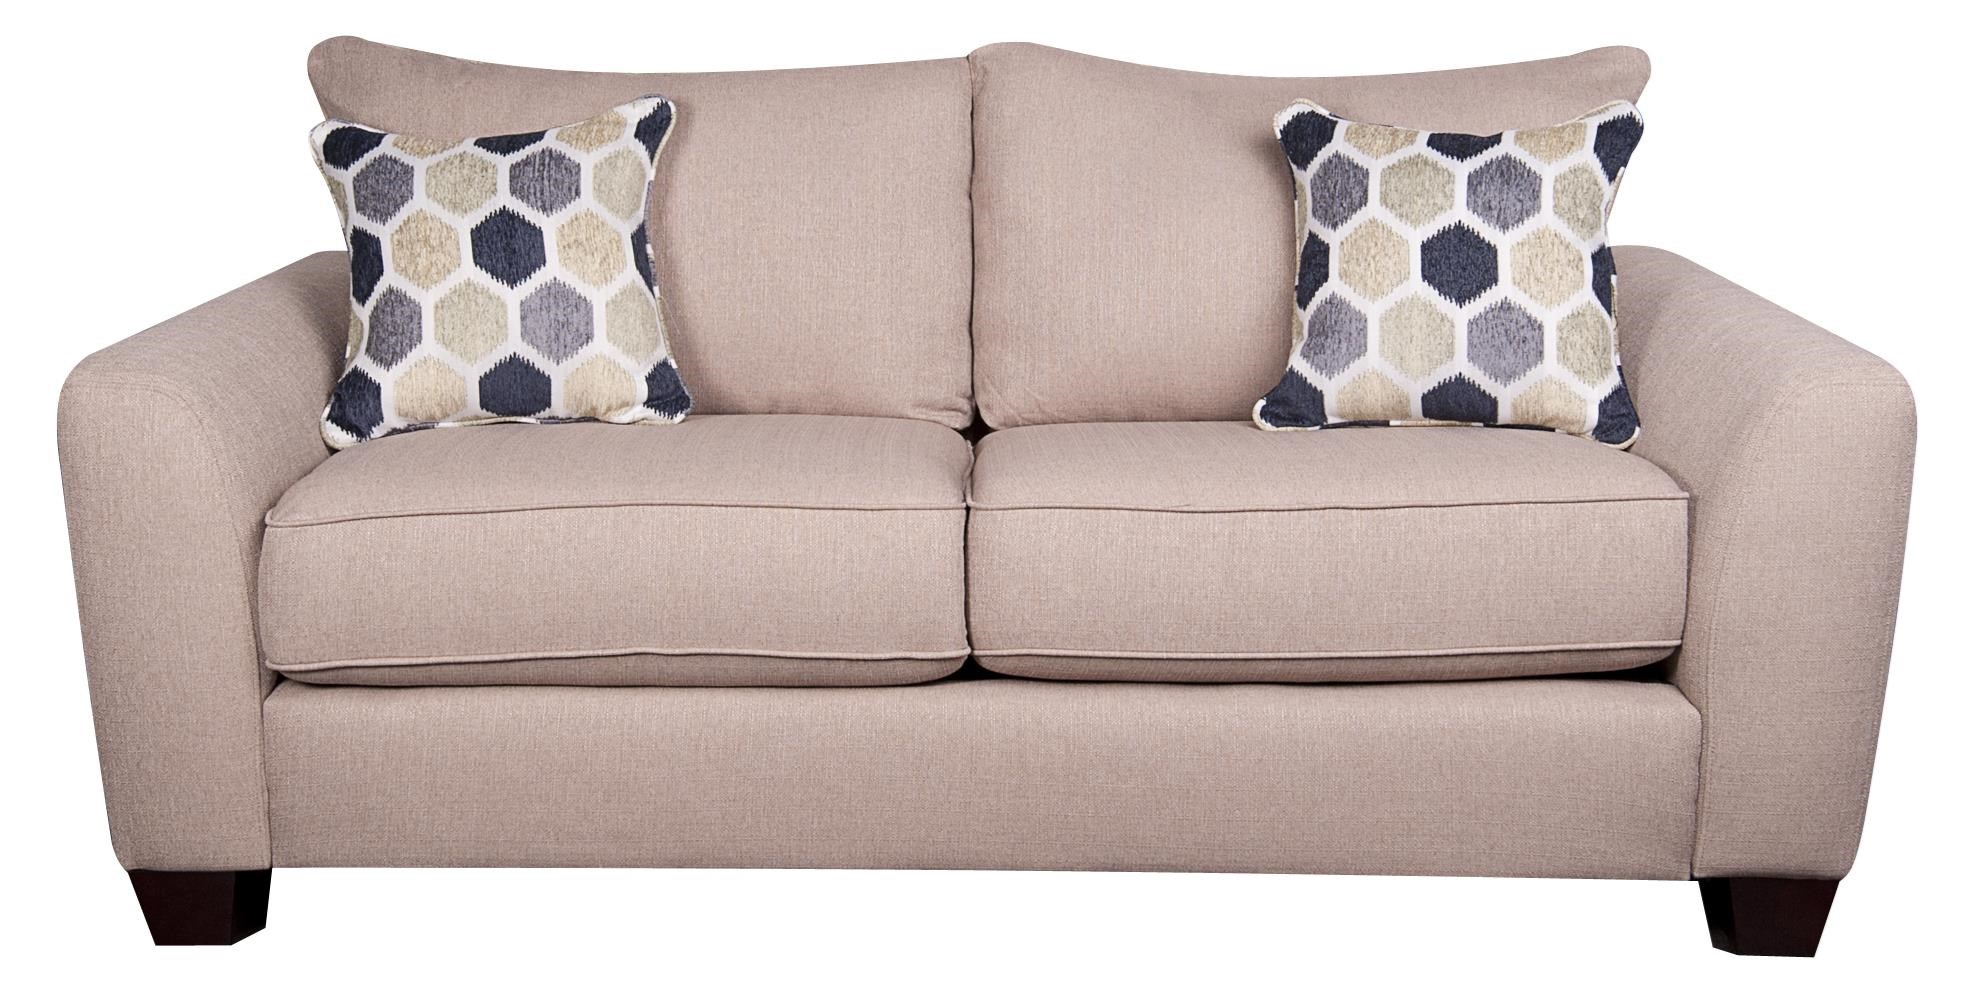 Morris Home Remedy Remedy Loveseat - Item Number: 350733554